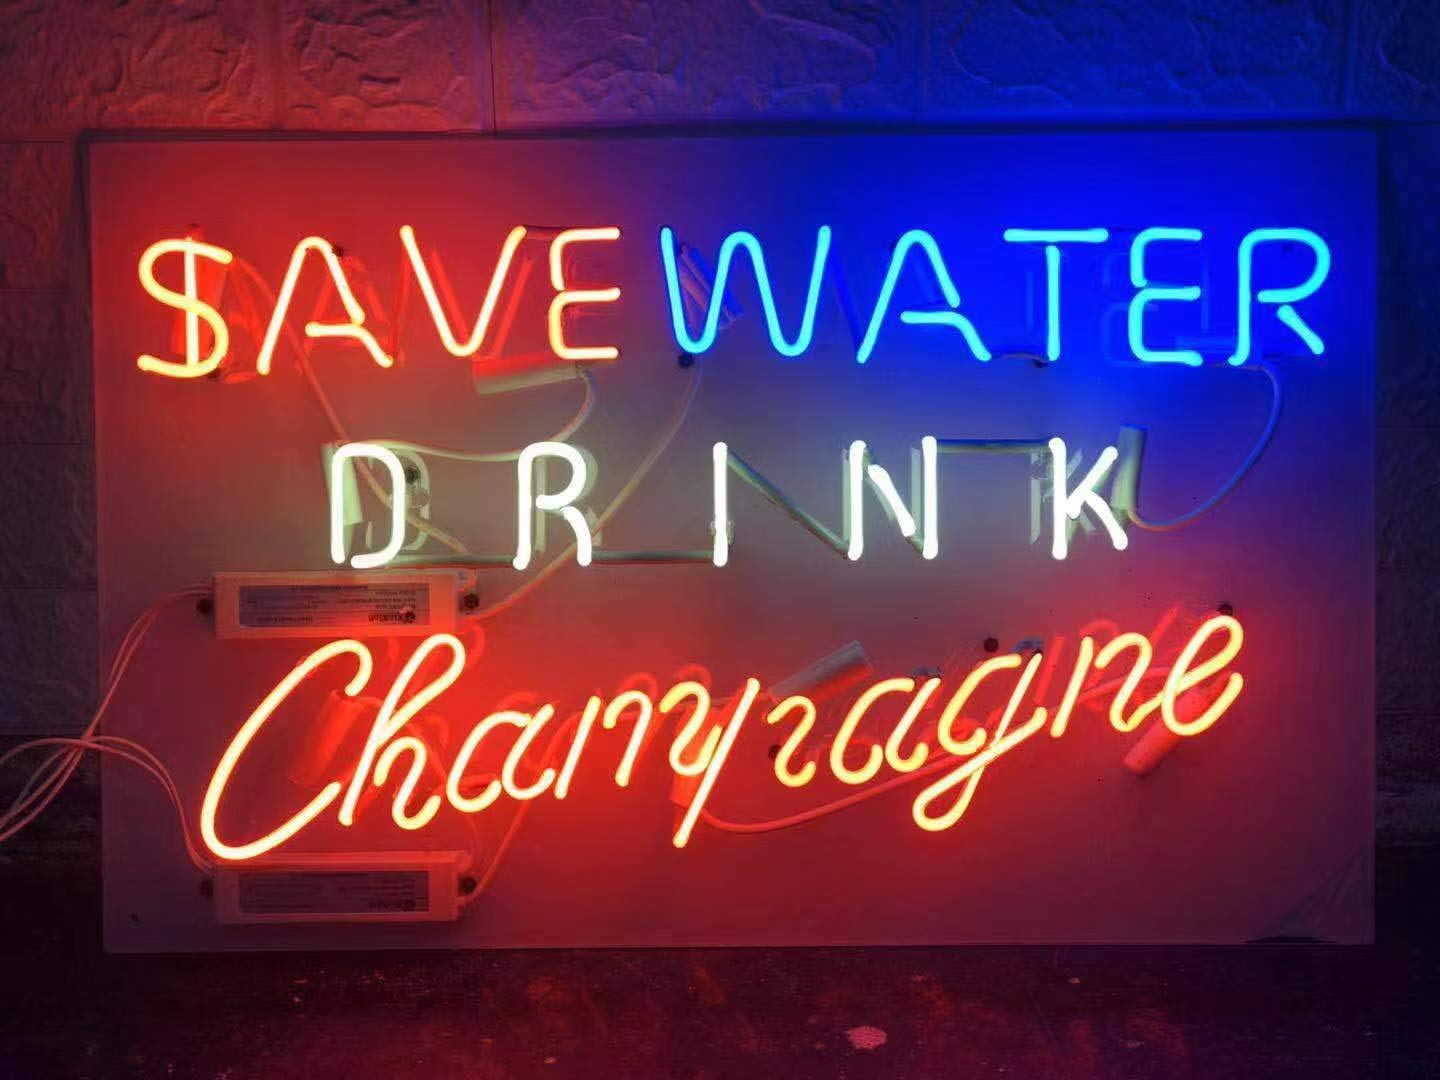 SAVE WATER DRINK CHAMPAGNE 24x14 Neon Sign Light,Advertising Sign Nightlight,Handmade Real Glass Tube,Beer Bar Pub Home Room Windows Garage Wall Decor Wedding Party Decoration